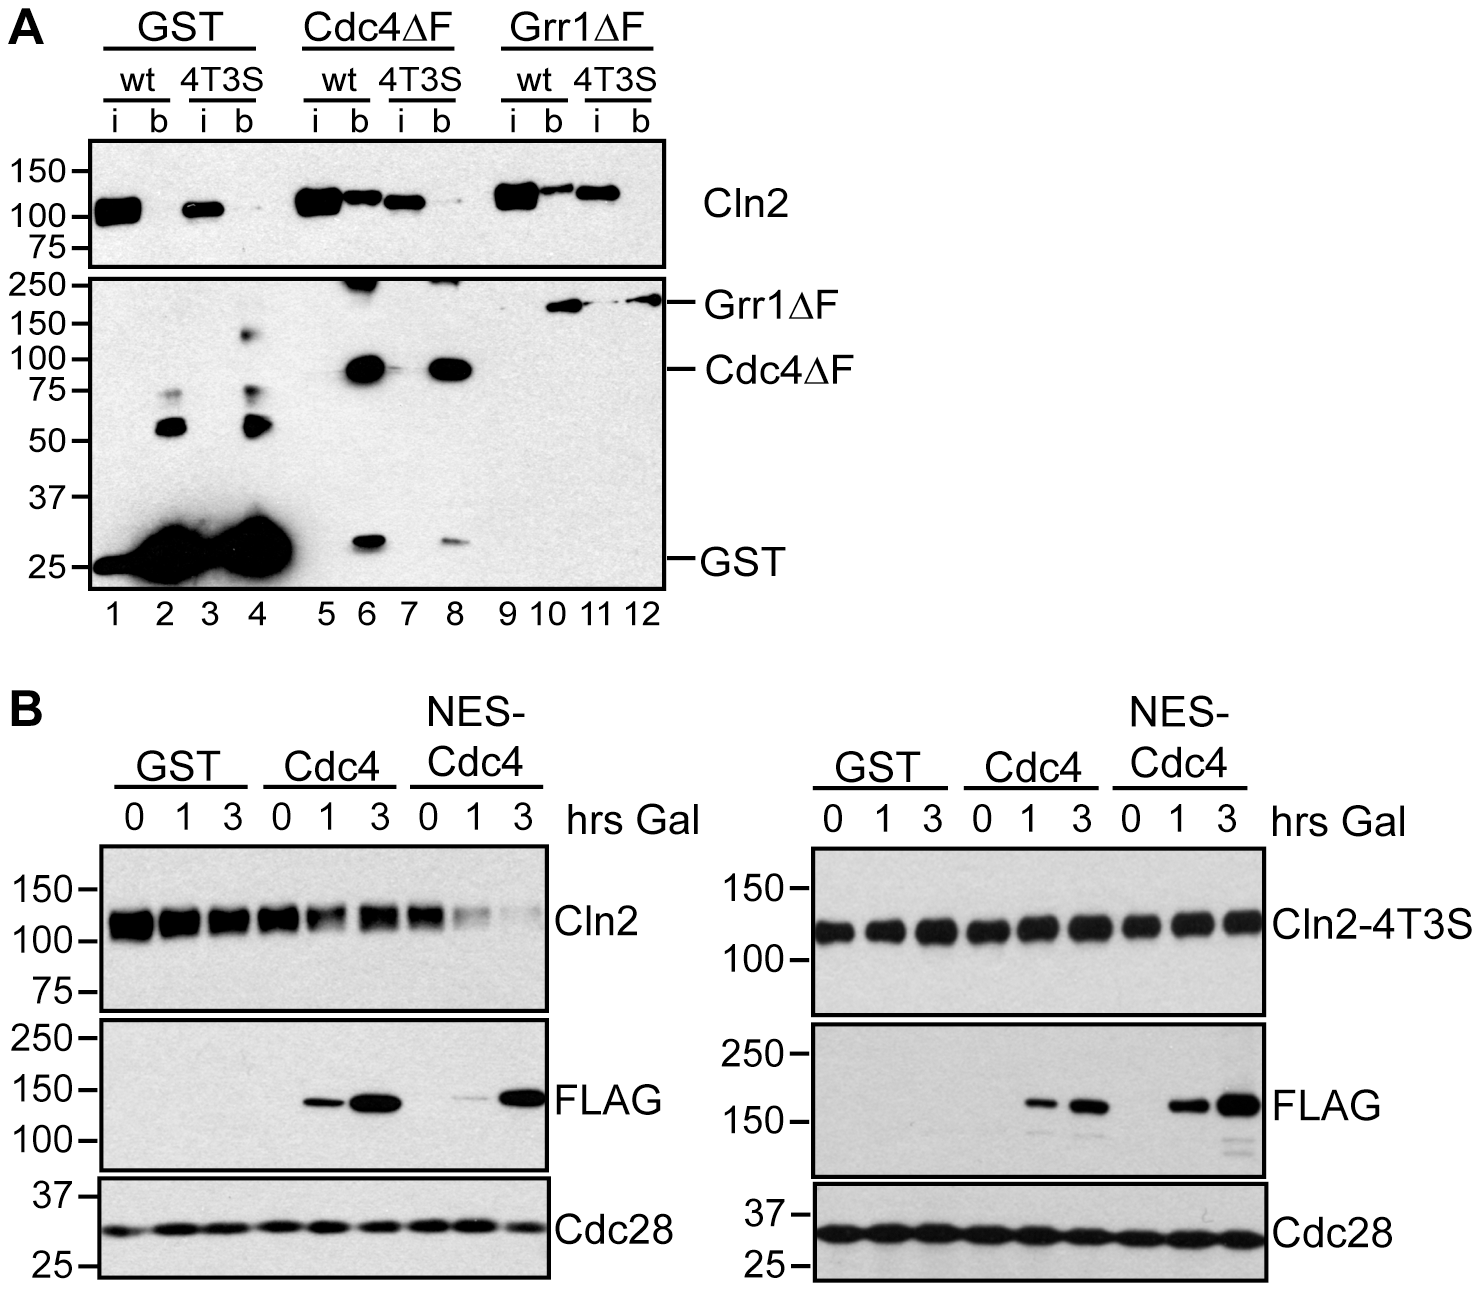 Cdc4 can target Cln2 for degradation upon co-localization.